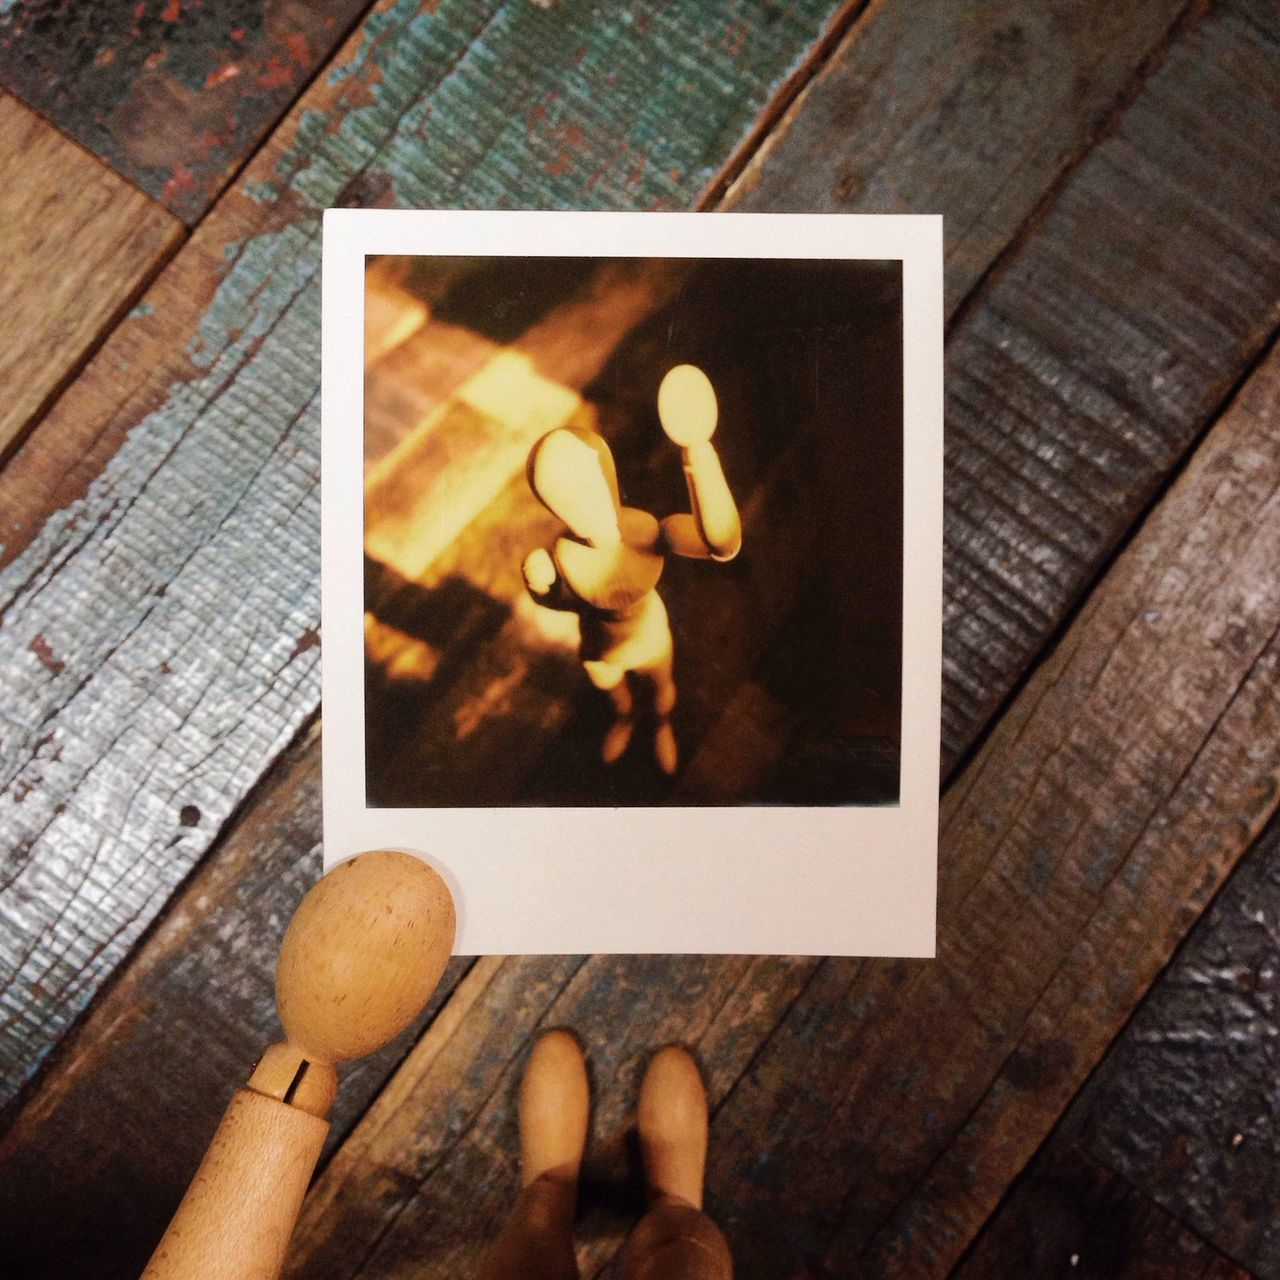 Close-up of instant photo picture of wooden human representation